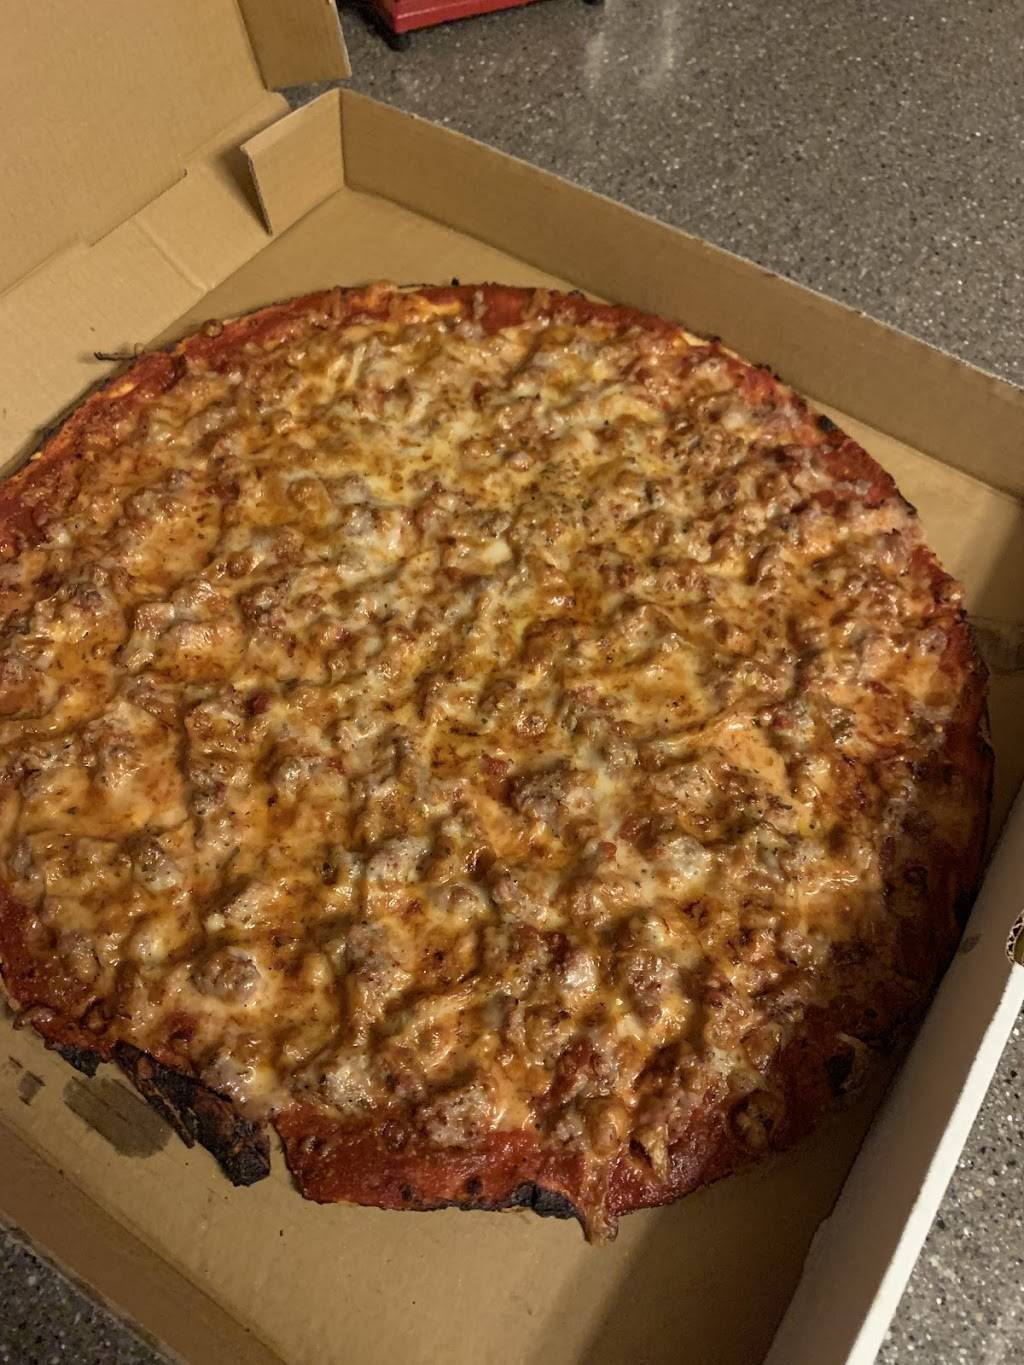 Addy's Pizza | meal delivery | 108 Cecil St, Camdenton, MO 65020, USA | 5733468300 OR +1 573-346-8300